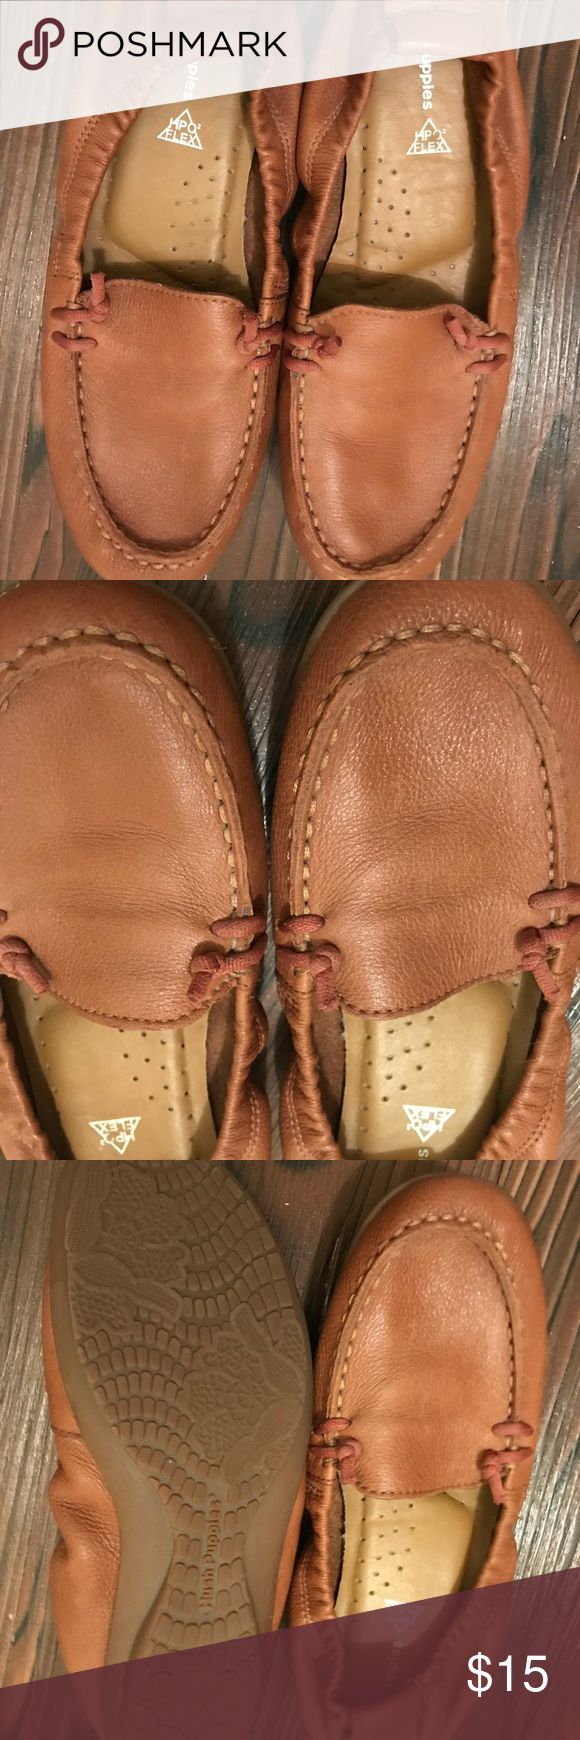 Hush Puppies Brown Tan Loafers - Size 6 These are Hush Puppies brown tan loafers. The back has elastic, making the shoes super flexible. They are also extremely padded and comfortable. They are in good condition. Size 6. Hush Puppies Shoes Flats & Loafers